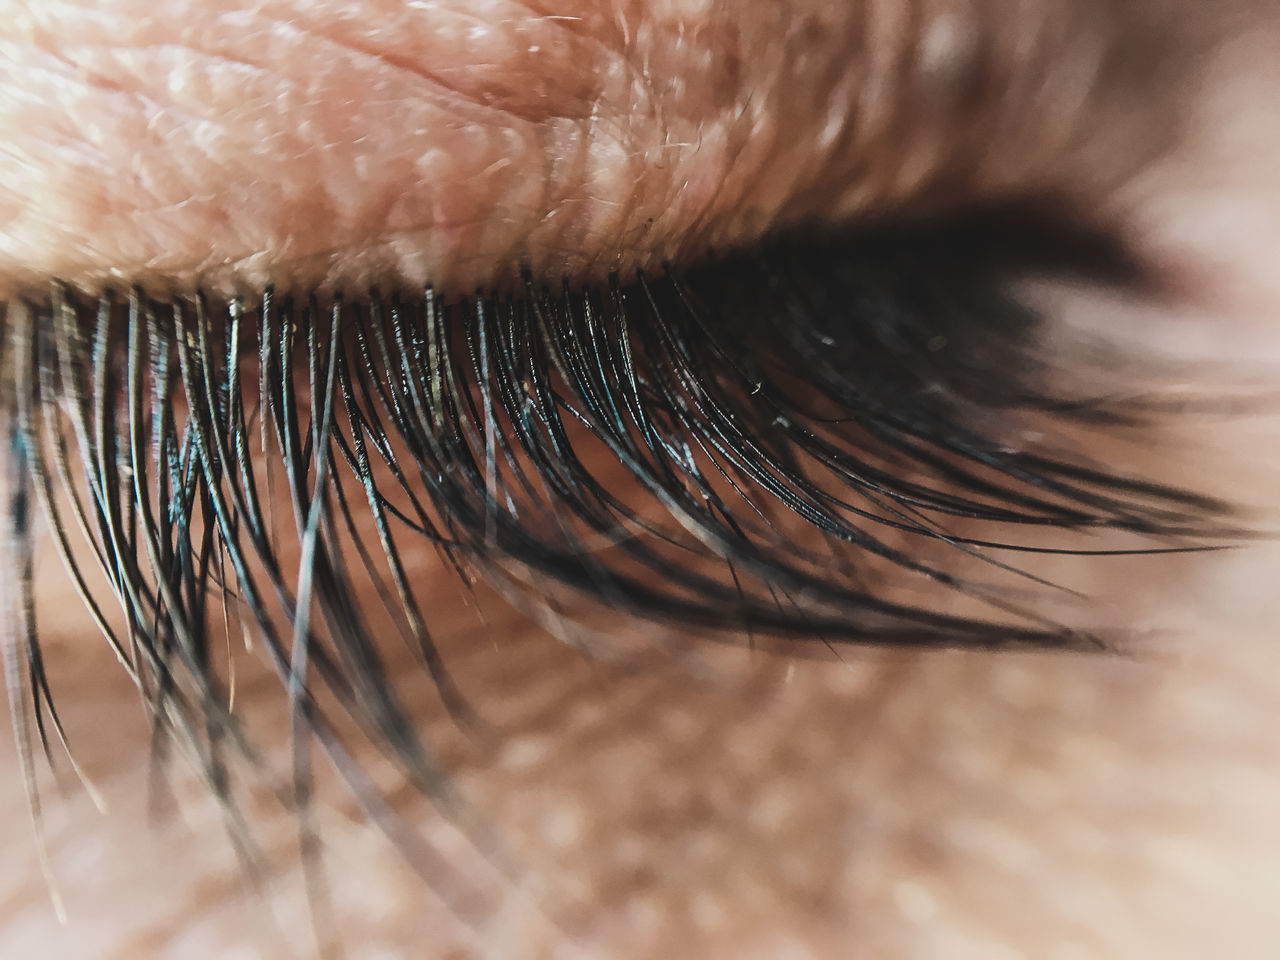 Beauty Check This Out Close Up Close-up Exceptional Photographs Eye4photography  EyeEm EyeEm Best Shots Eyelash First Eyeem Photo Hello World Human Body Part Human Eye Macro Maximum Closeness One Person Popular Photos TCPM The Portraitist - 2017 EyeEm Awards